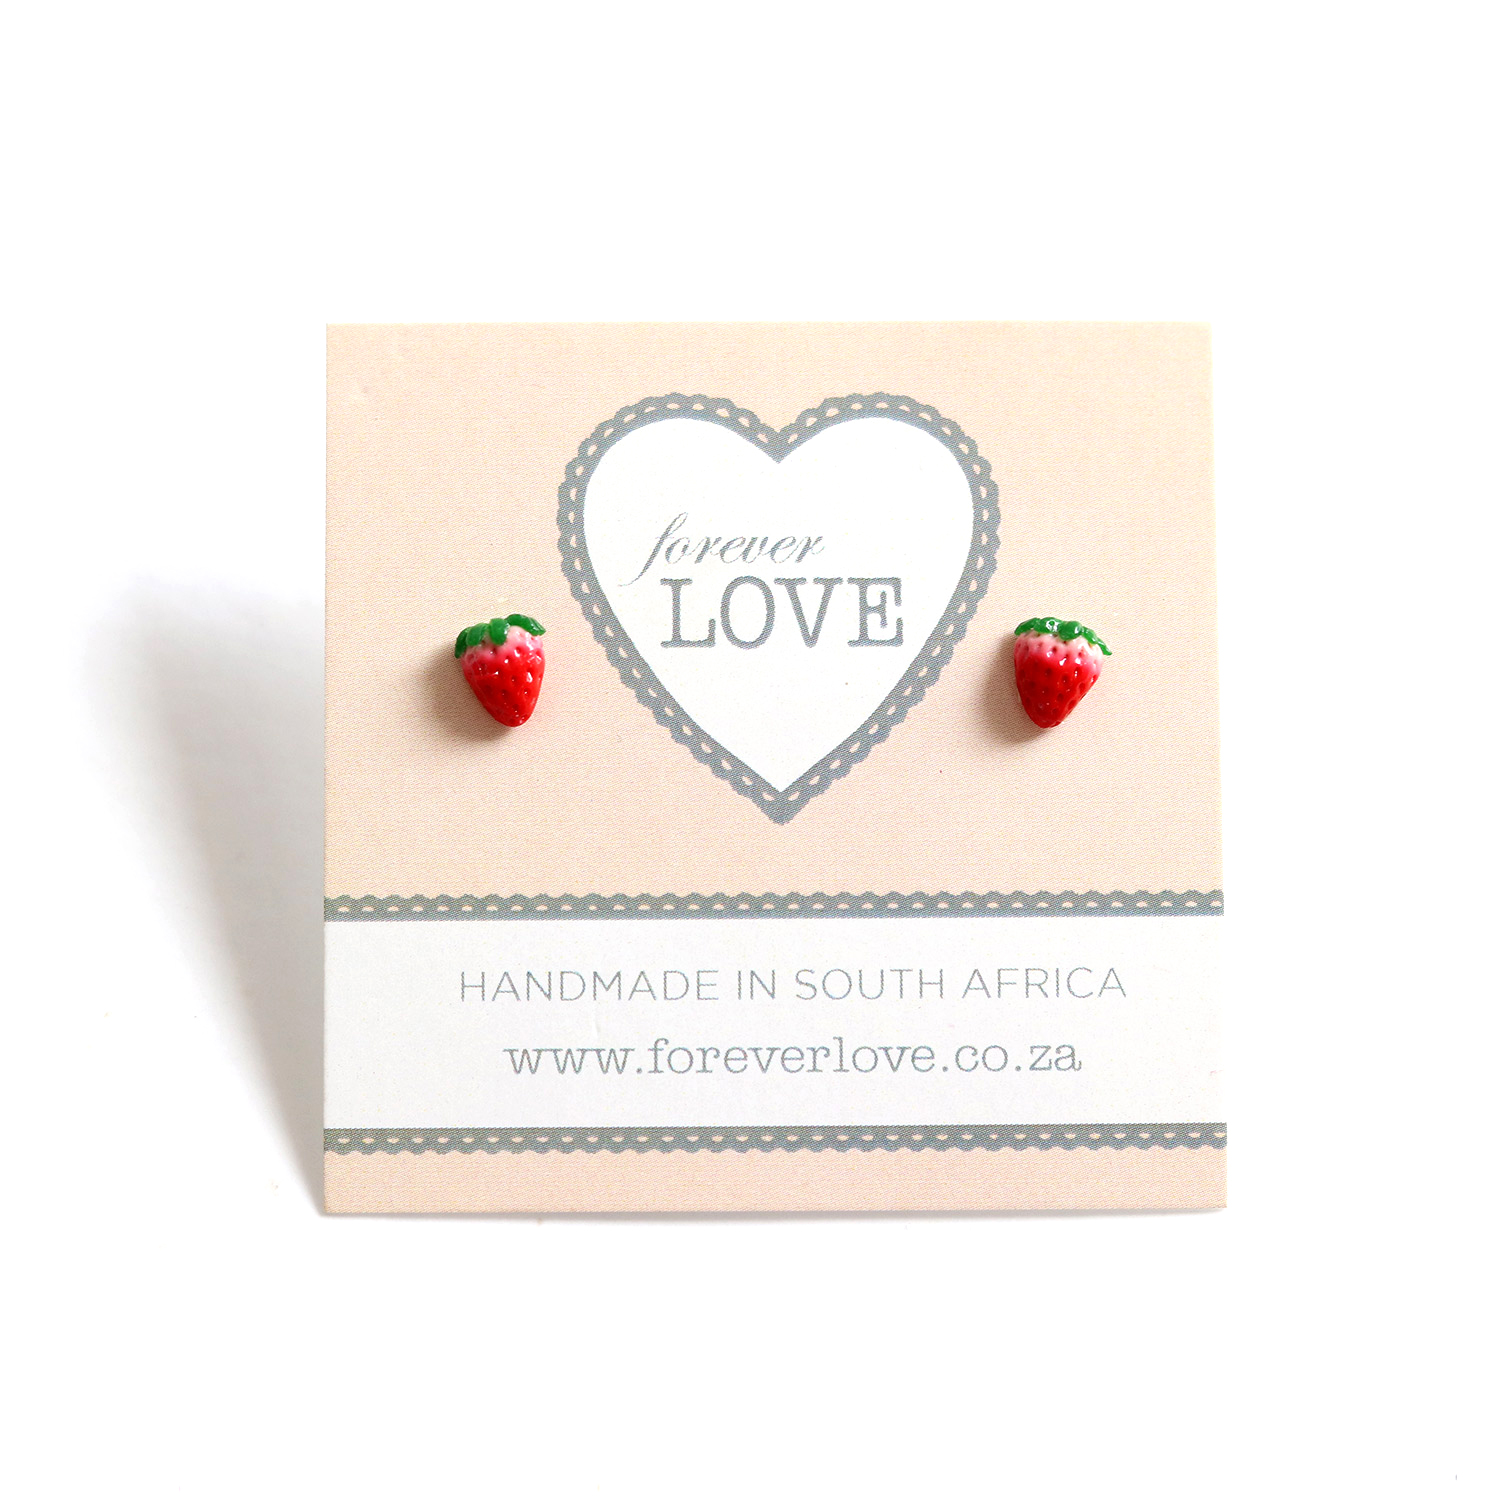 These totally adorable juicy strawberry studs and unique handmade from polymer clay.  Kindly note that due to their handmade nature, there will be slight differences.